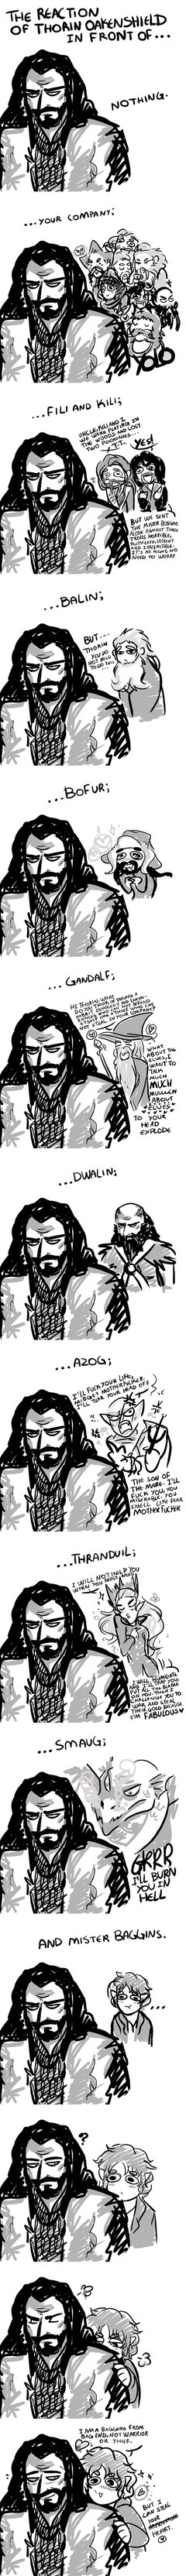 The Reaction of Thorin Oakenshield by Carszl